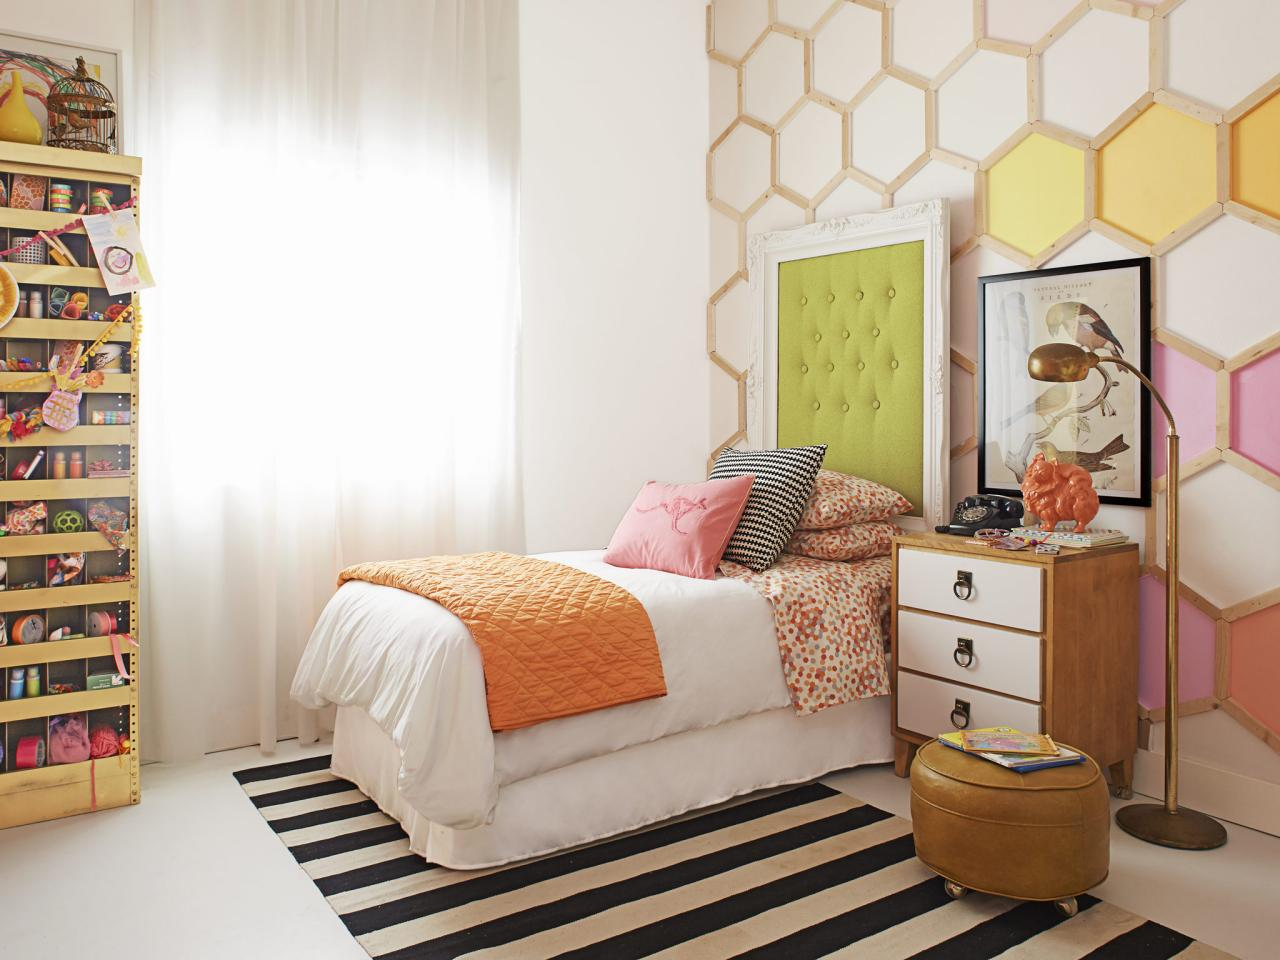 The Totally Diy Kid 39 S Room Kids Room Ideas For Playroom